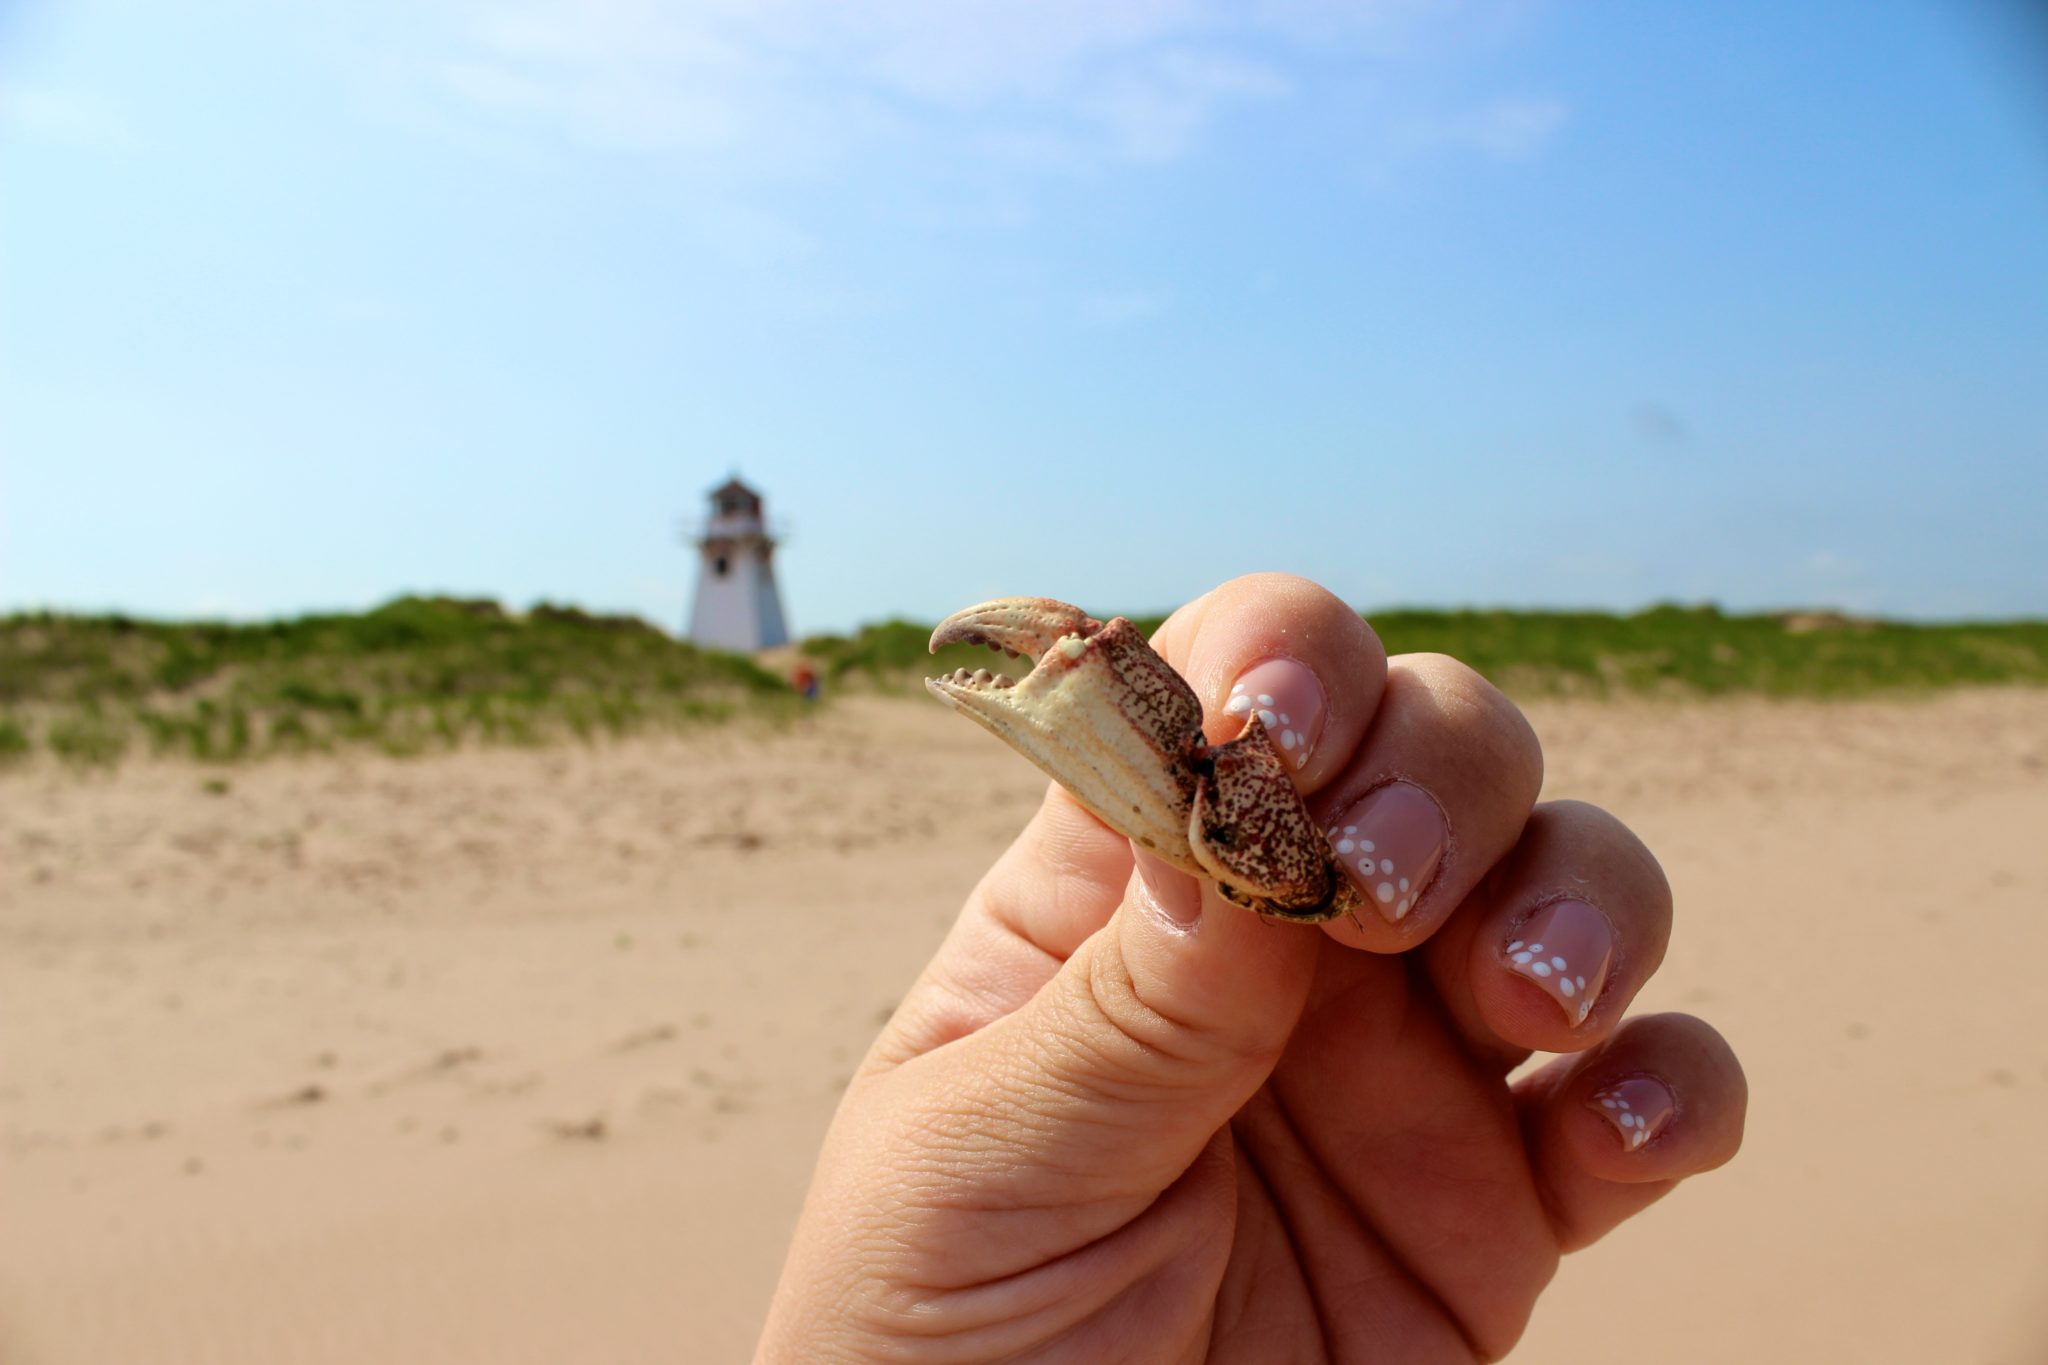 Found a little crab claw on the beach.